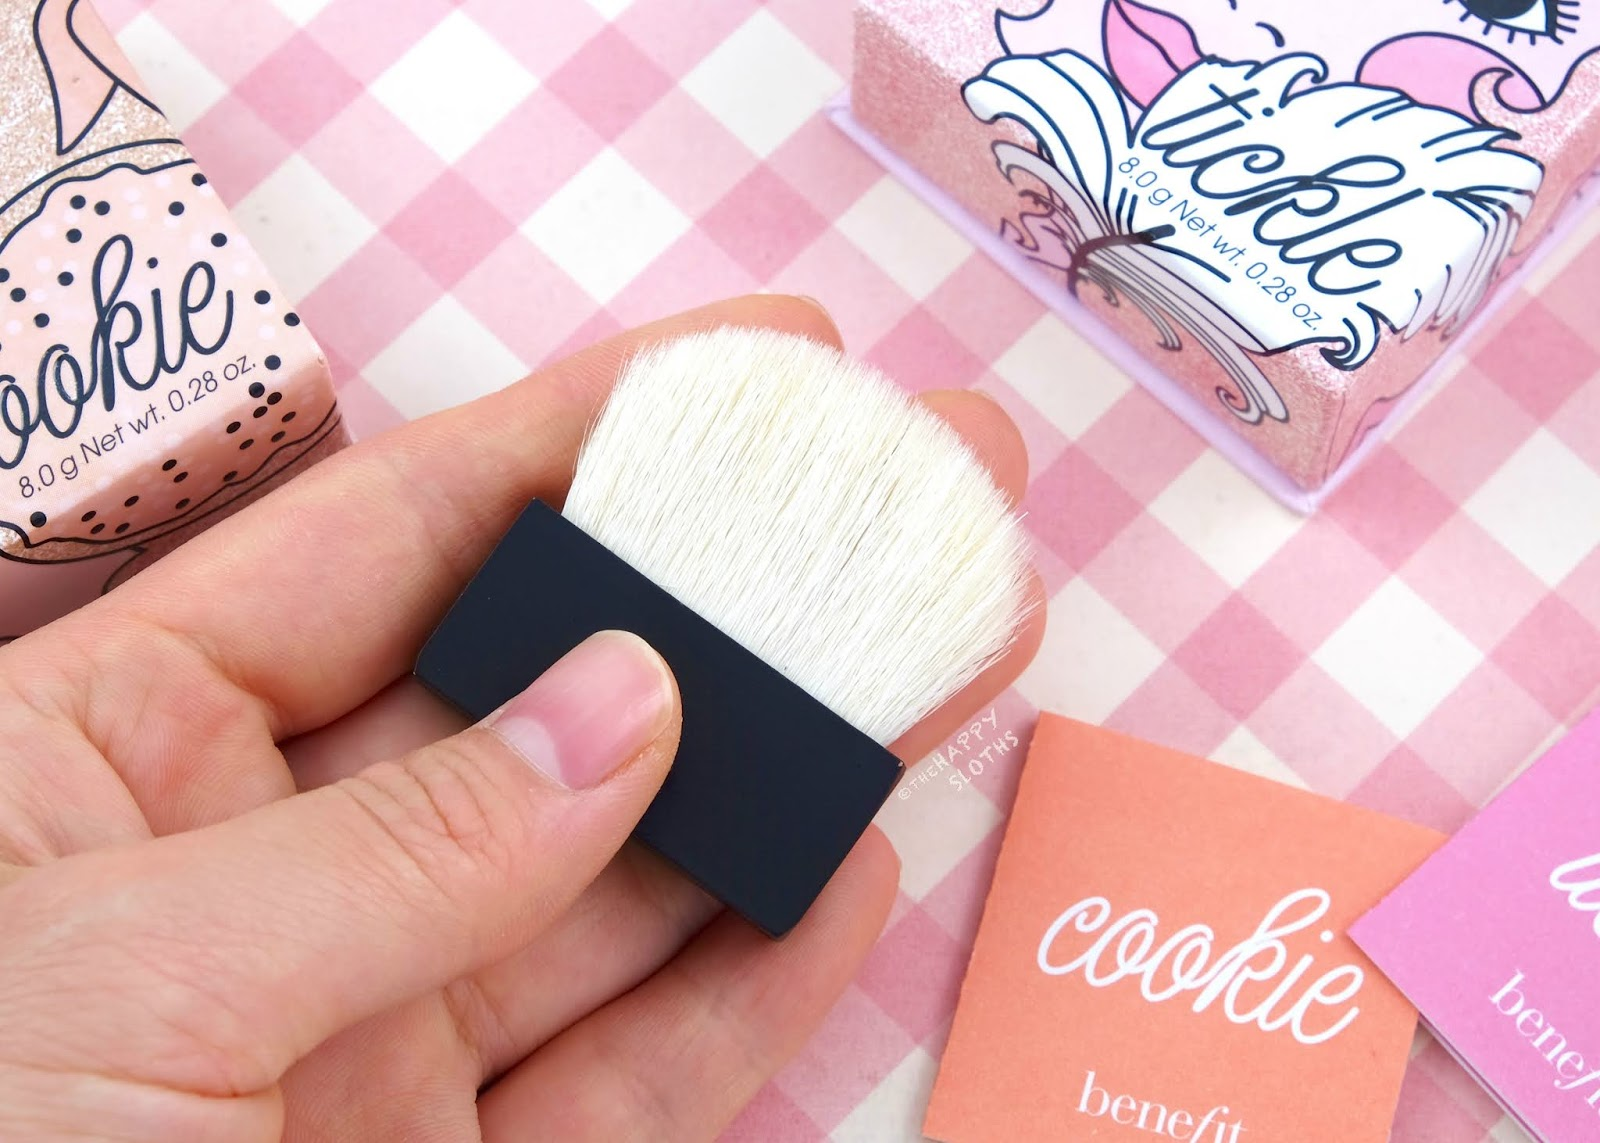 Benefit Cosmetics | Cookie Highlighter & Tickle Highlighter: Review and Swatches